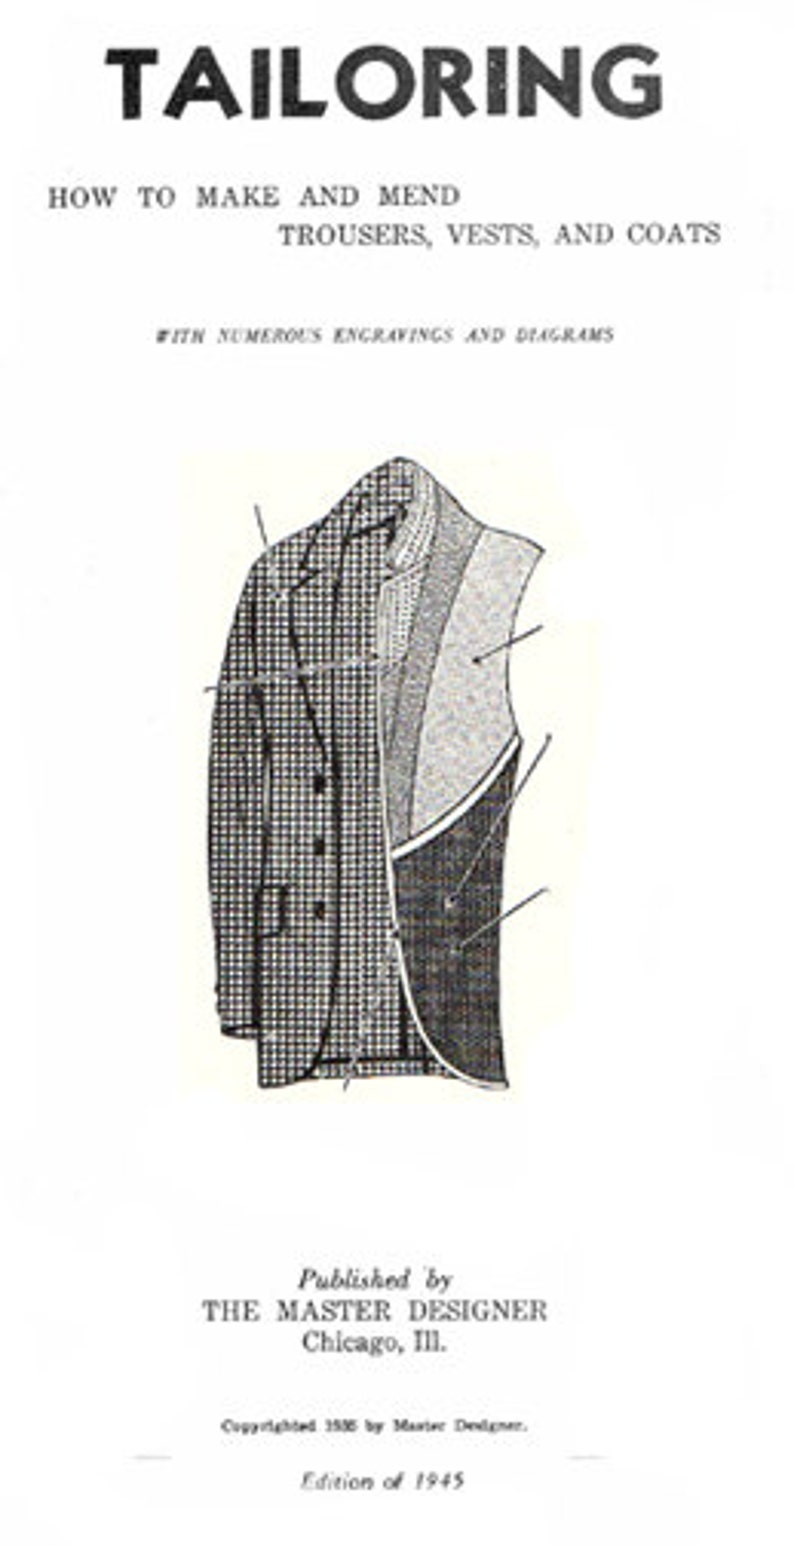 1940s Men's Clothing 1945 Master Tailoring Booklet Reproduction by EvaDress $20.00 AT vintagedancer.com